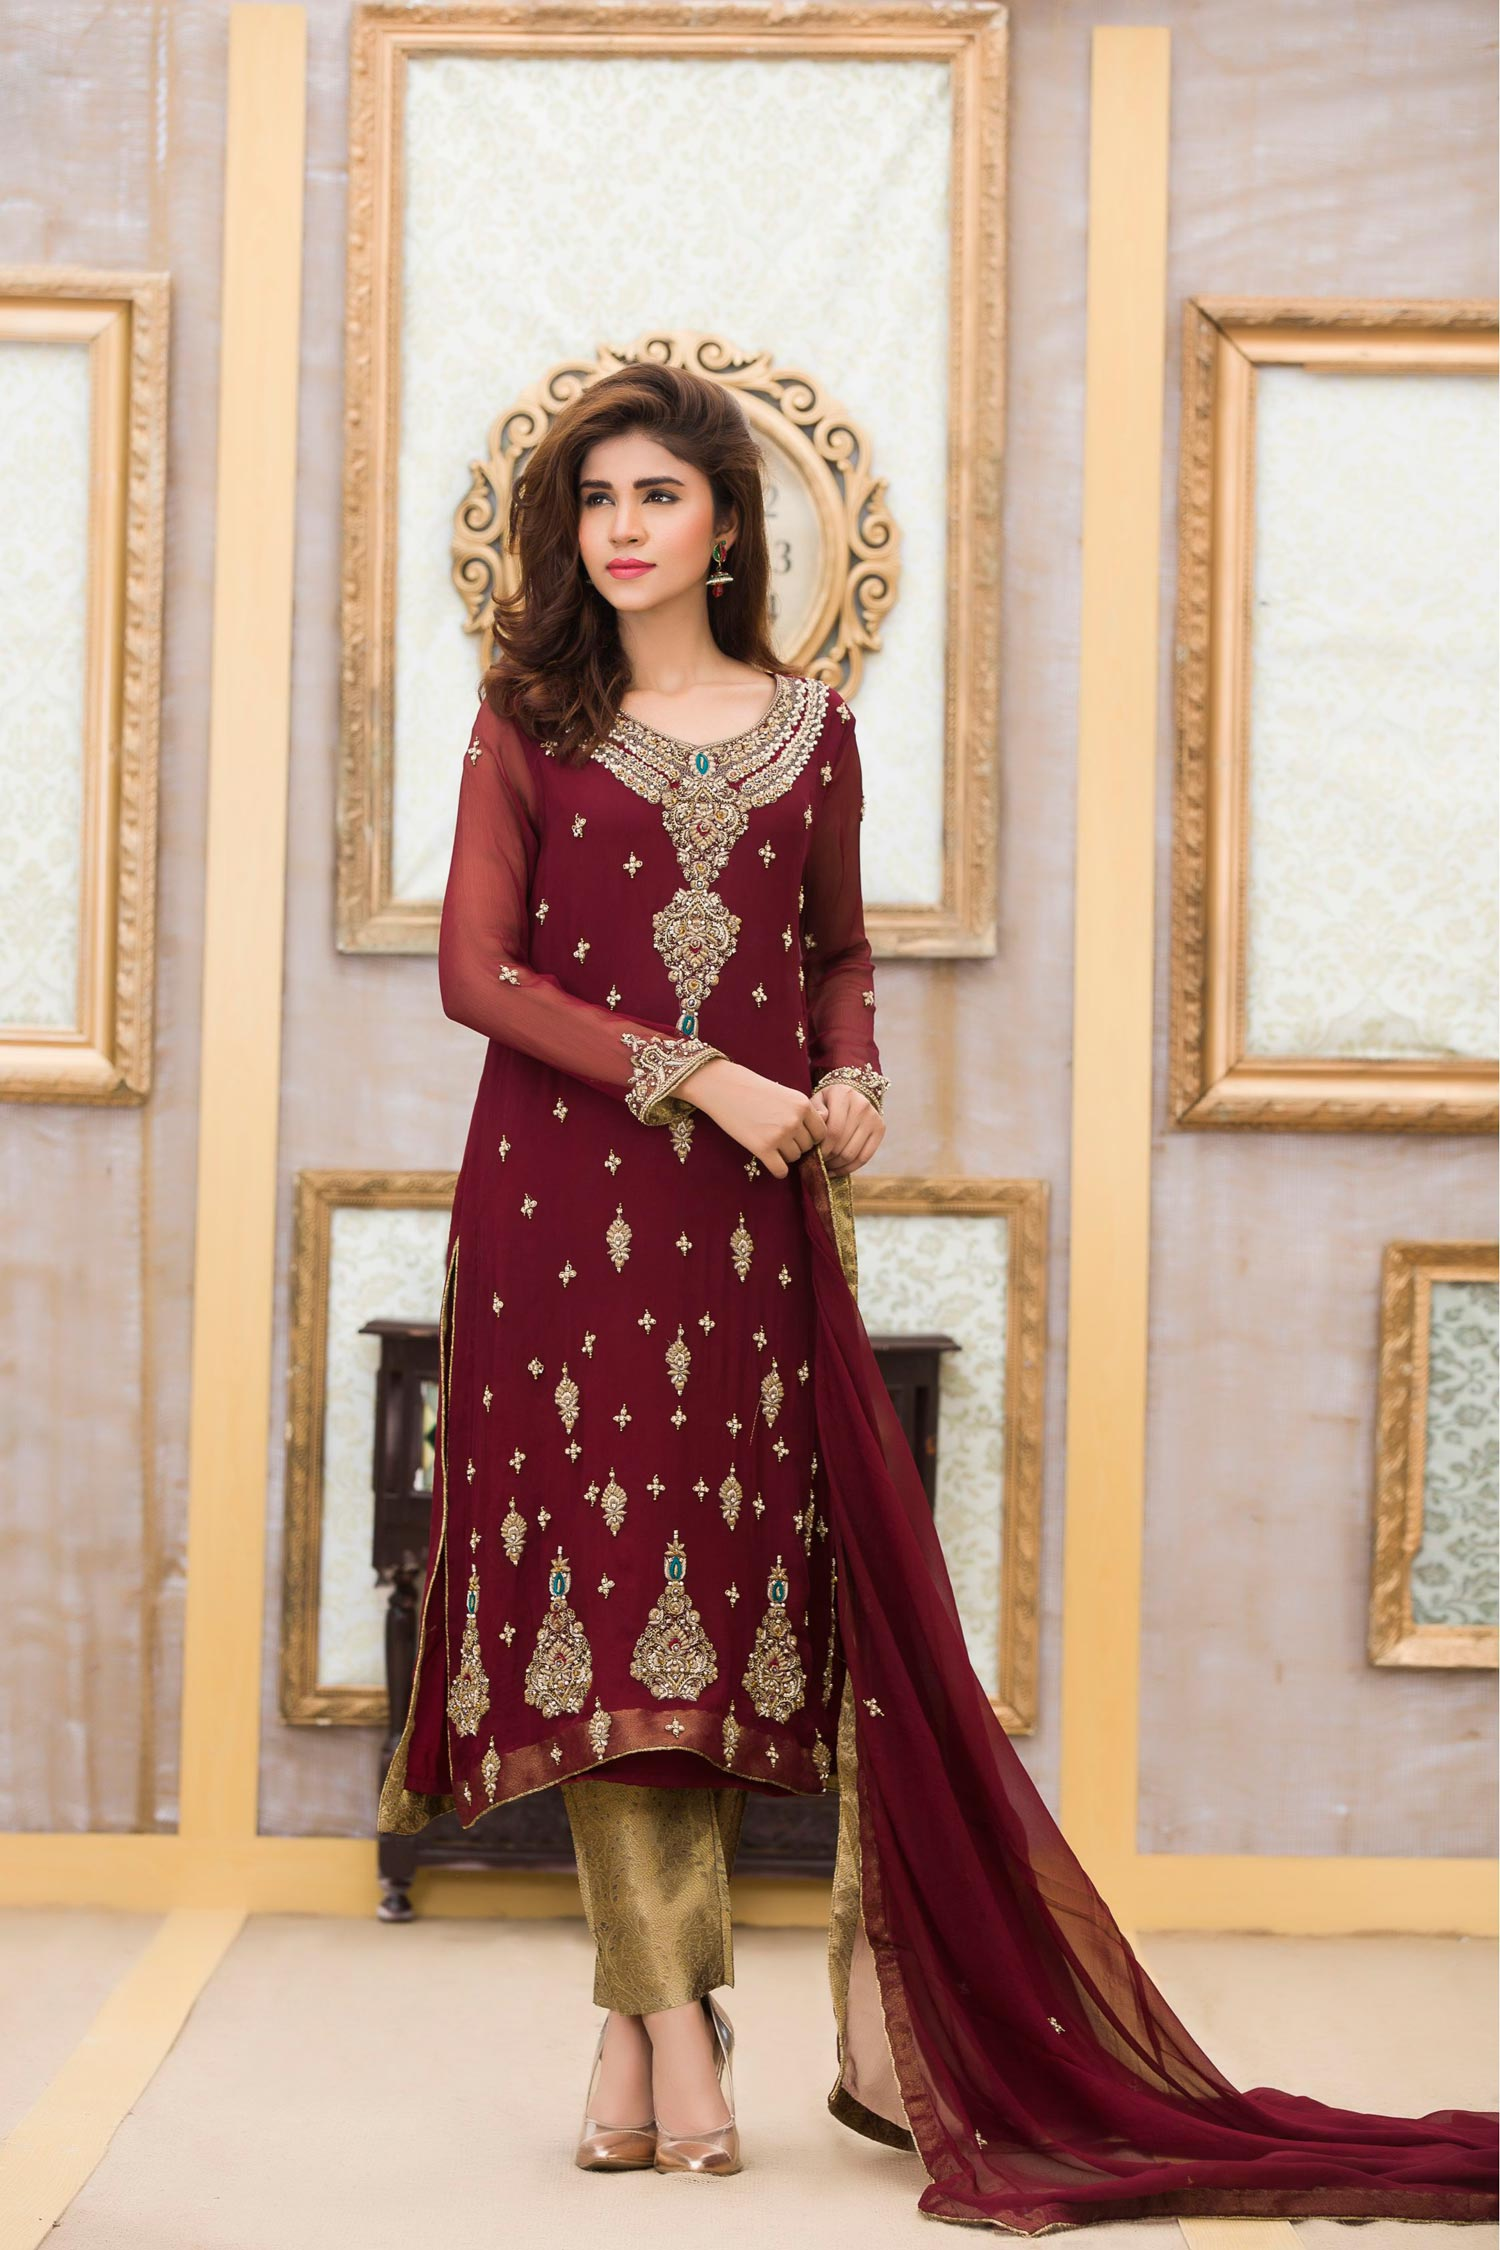 EXCLUSIVE BRIDAL STYLISH MAROON COLOR DRESS